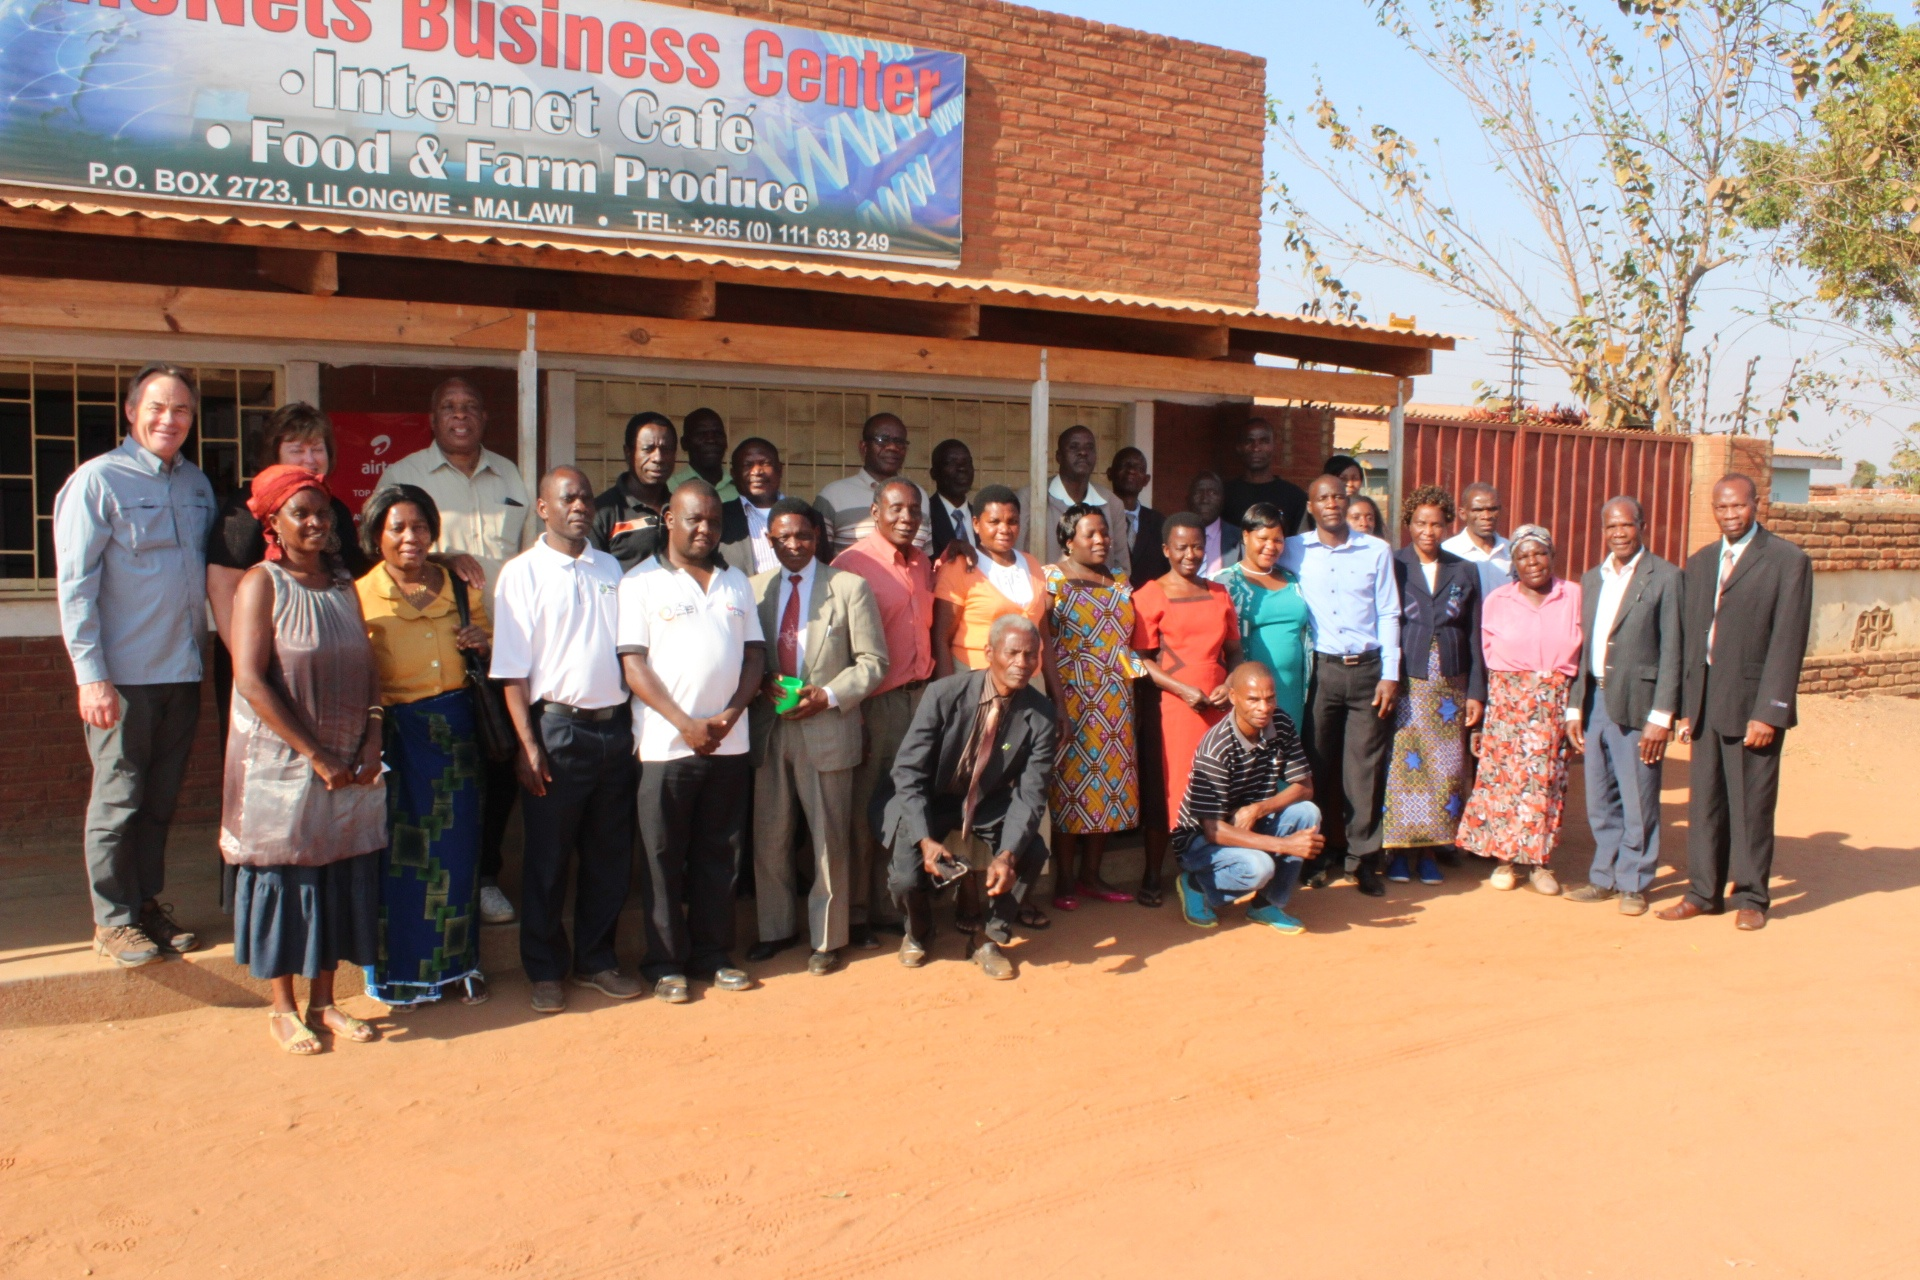 Darris and Debbie McNeely with brethren stand in front of the LifeNets Internet Cafe in Malawi.